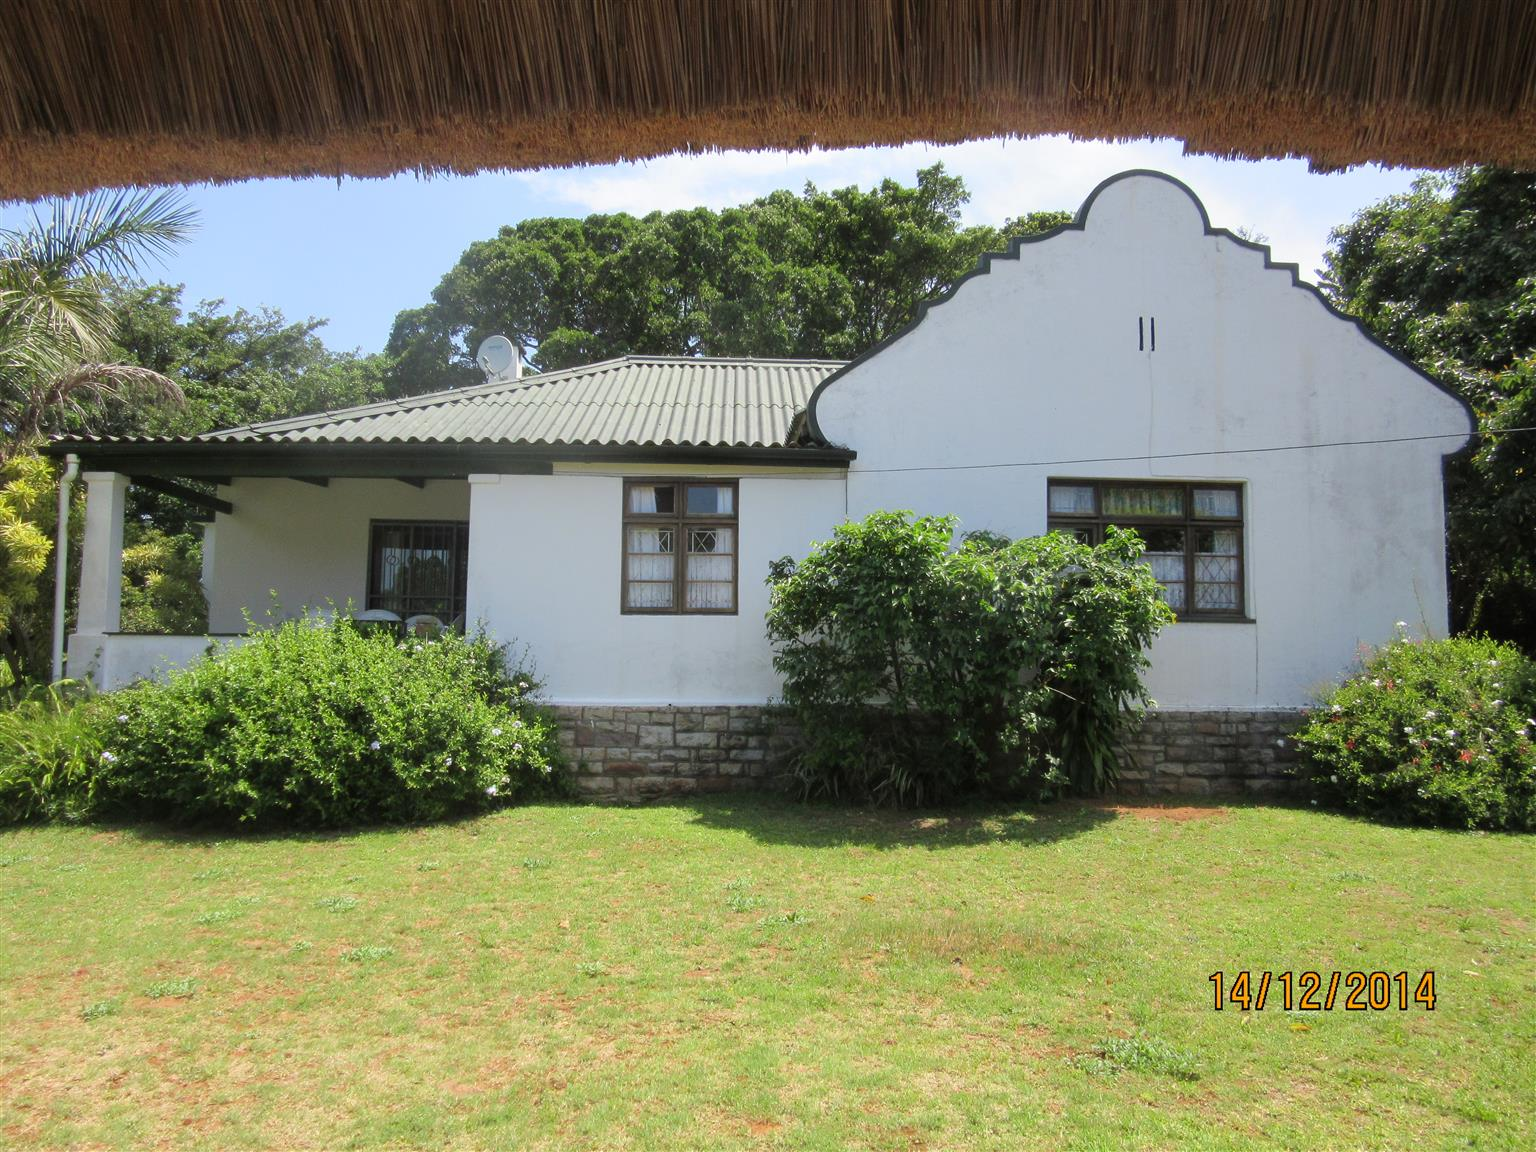 4 BEDROOM HOUSE PLUS COMPLETELY SEPARATE 1 BEDROOM COTTAGE - PRICE REDUCED FOR URGENT SALE - R950000 EXCELLENT INCOME UMTENTWENI